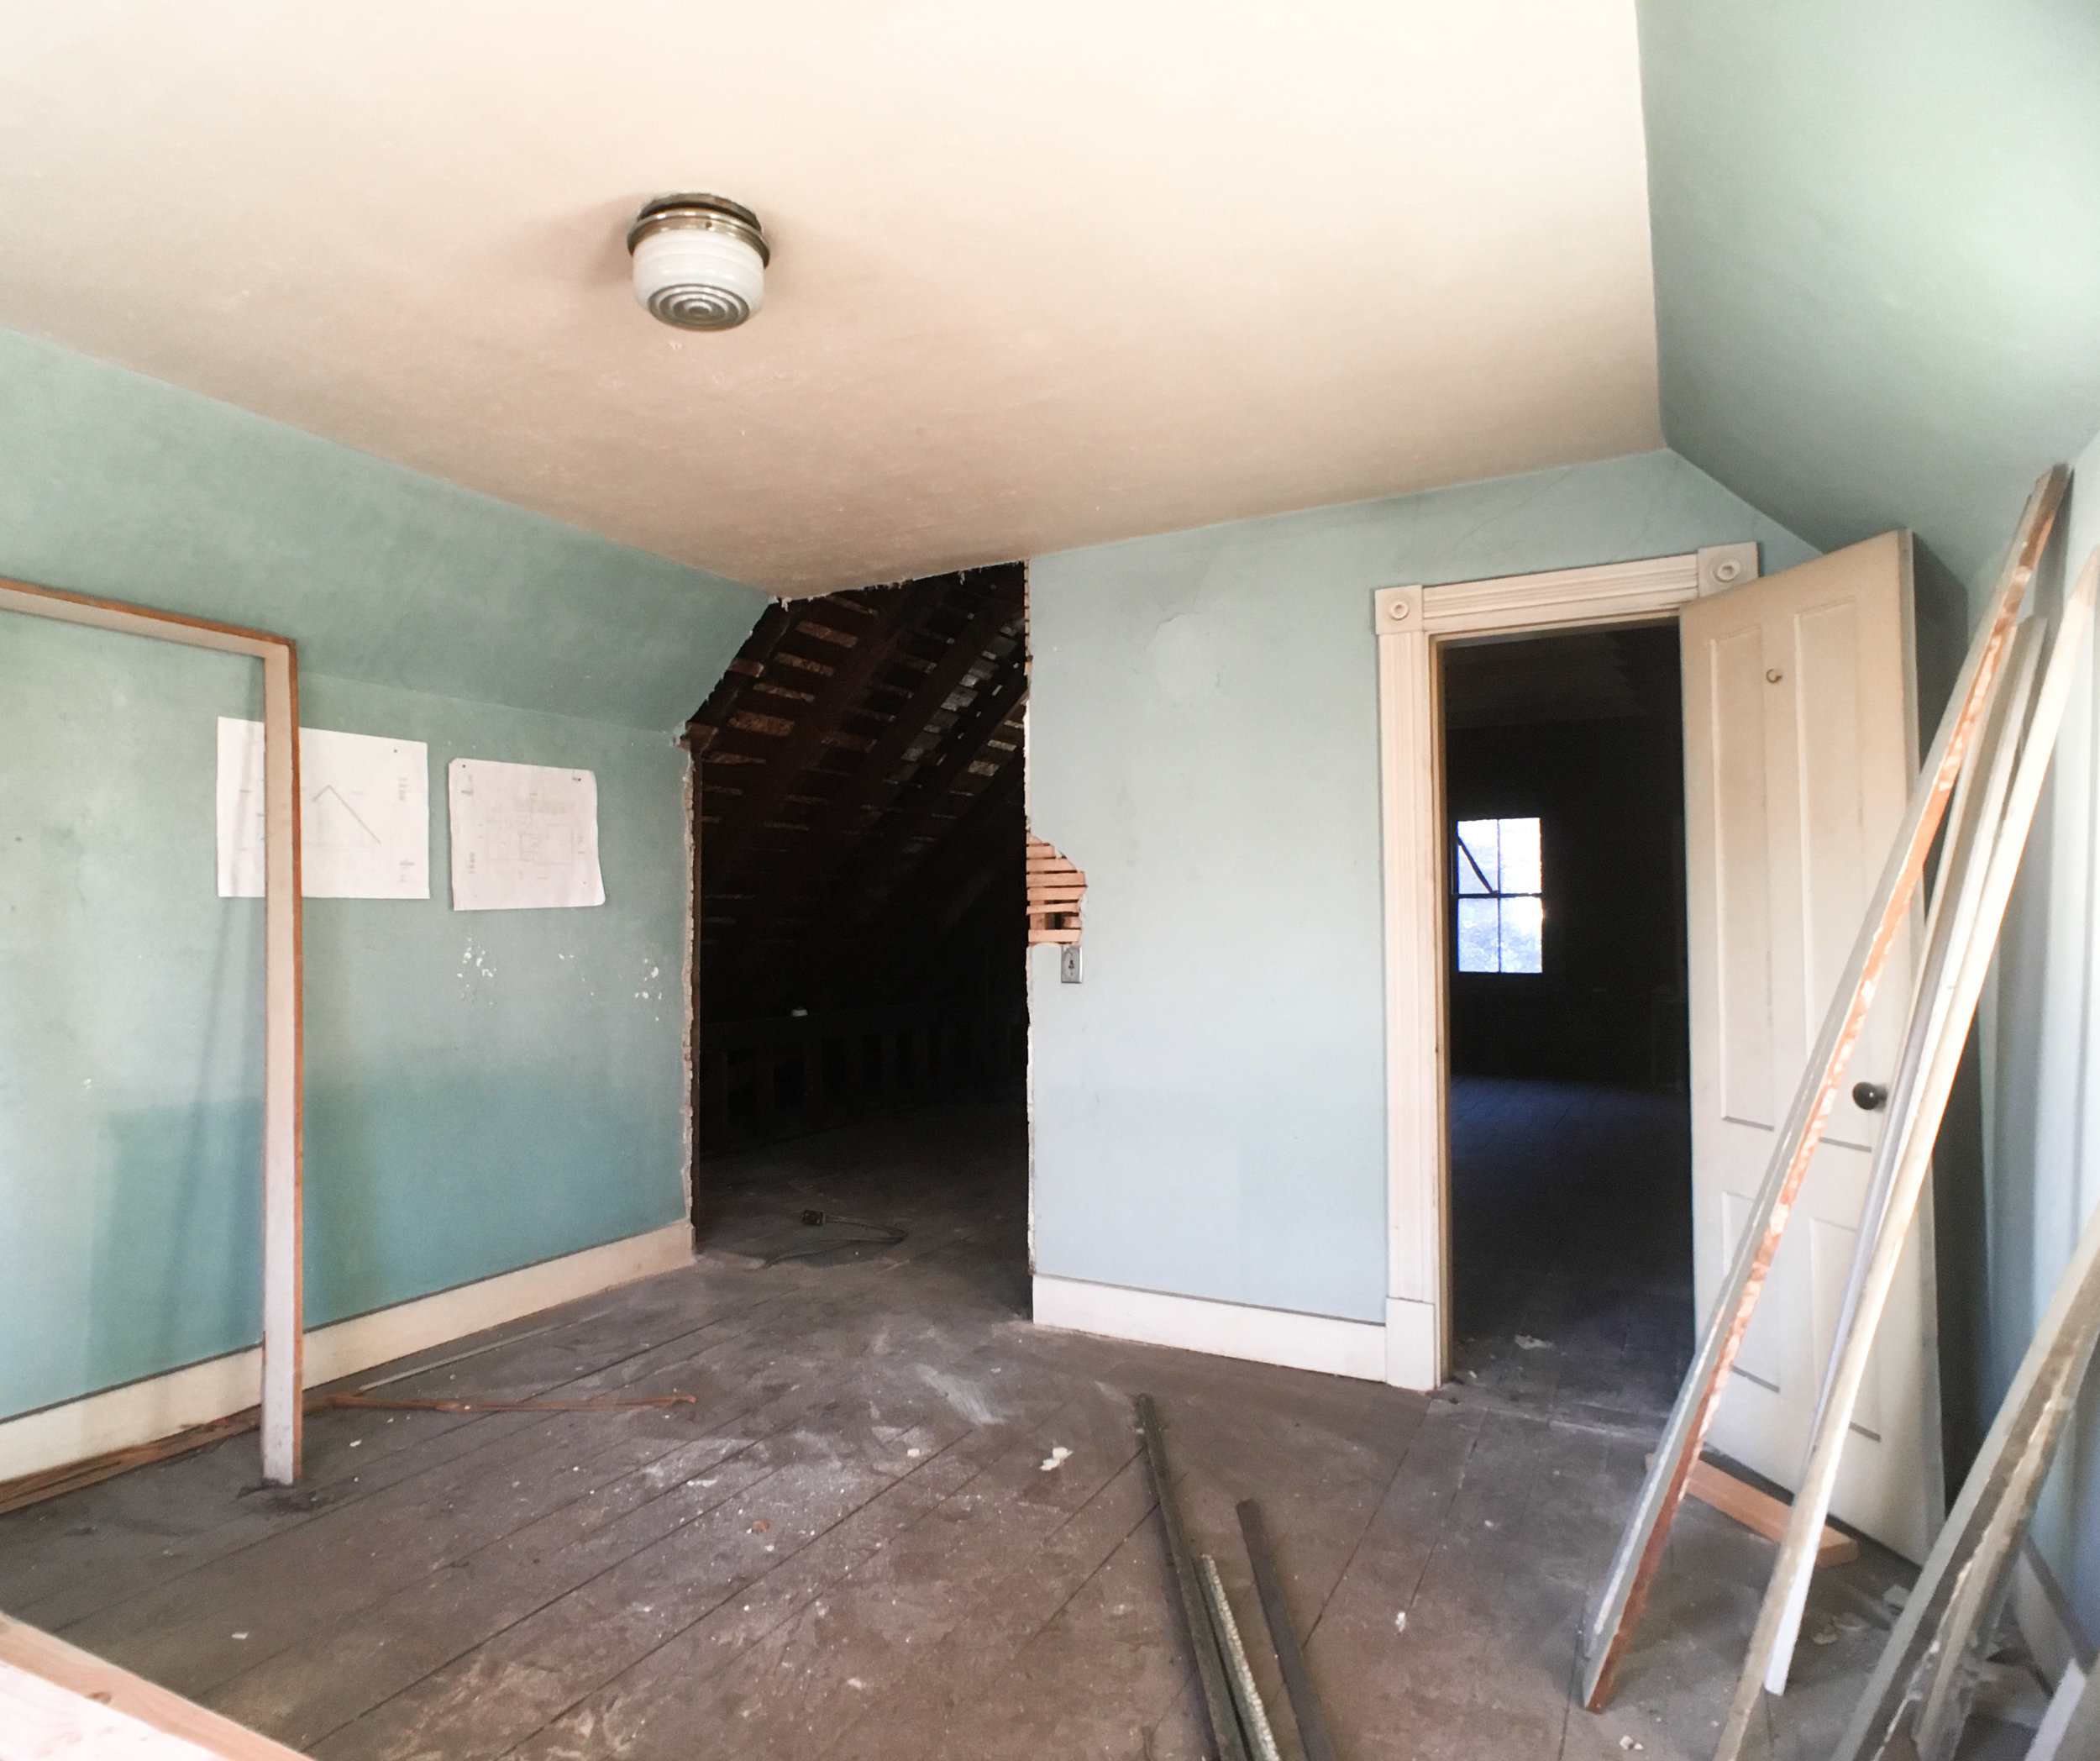 This original room was quite charming but definitely need some love. We will be keeping most of the layout and original details but will be modifying where it meets the hallway and the new future upstairs bathroom.